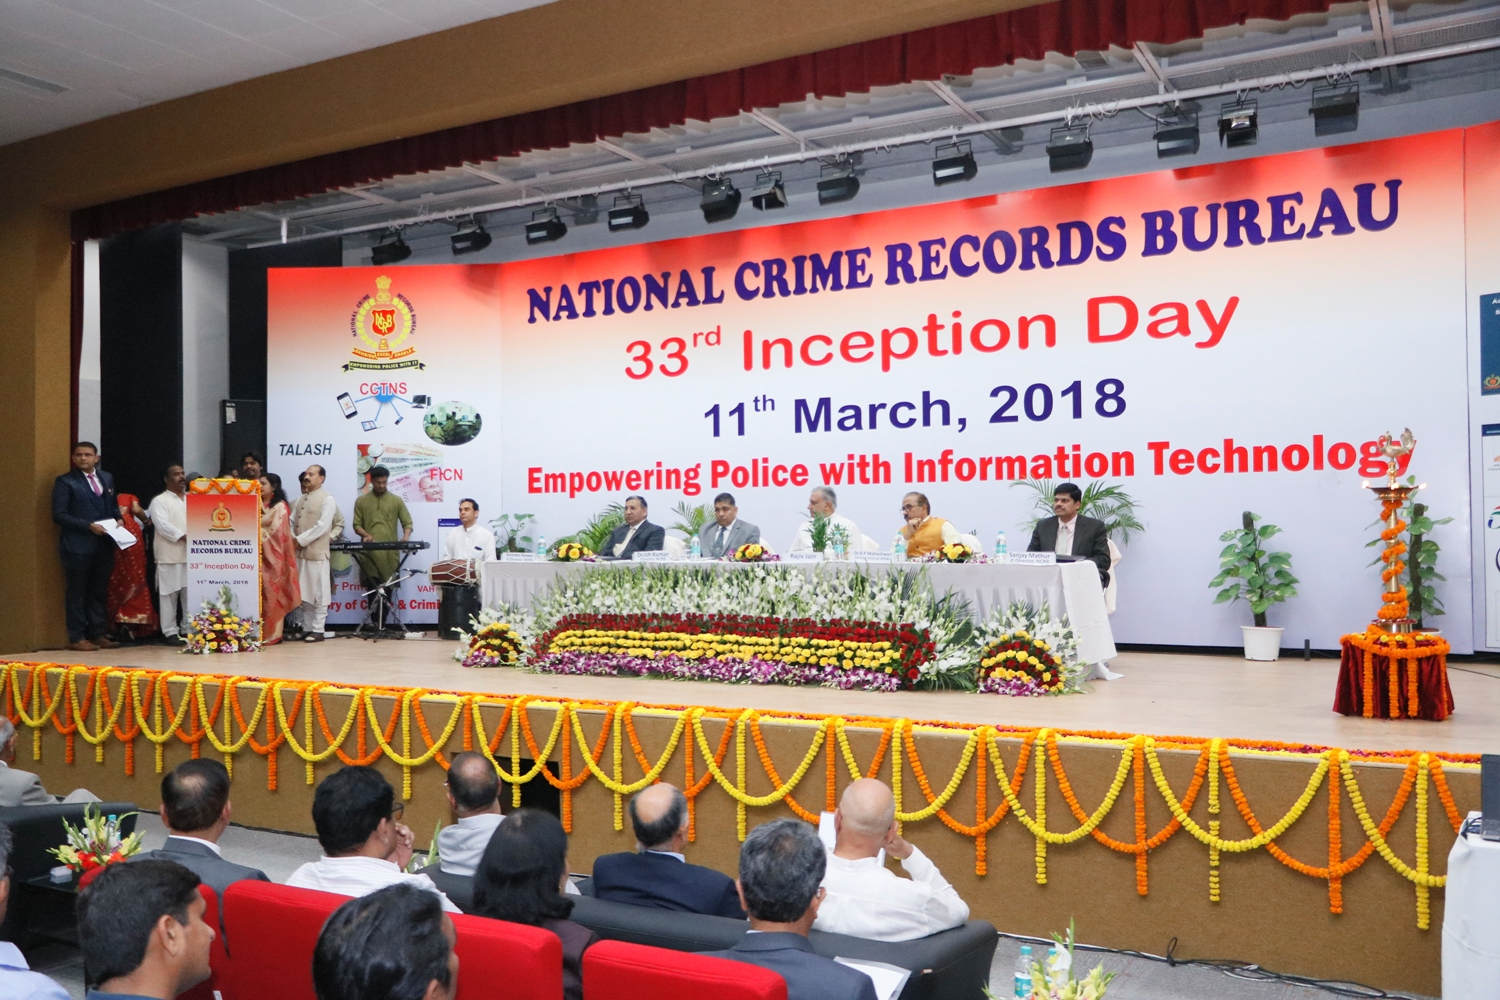 Internship Experience @ State Crime Records Bureau, Chennai: Learnt about Crime and Criminal Tracking Network System